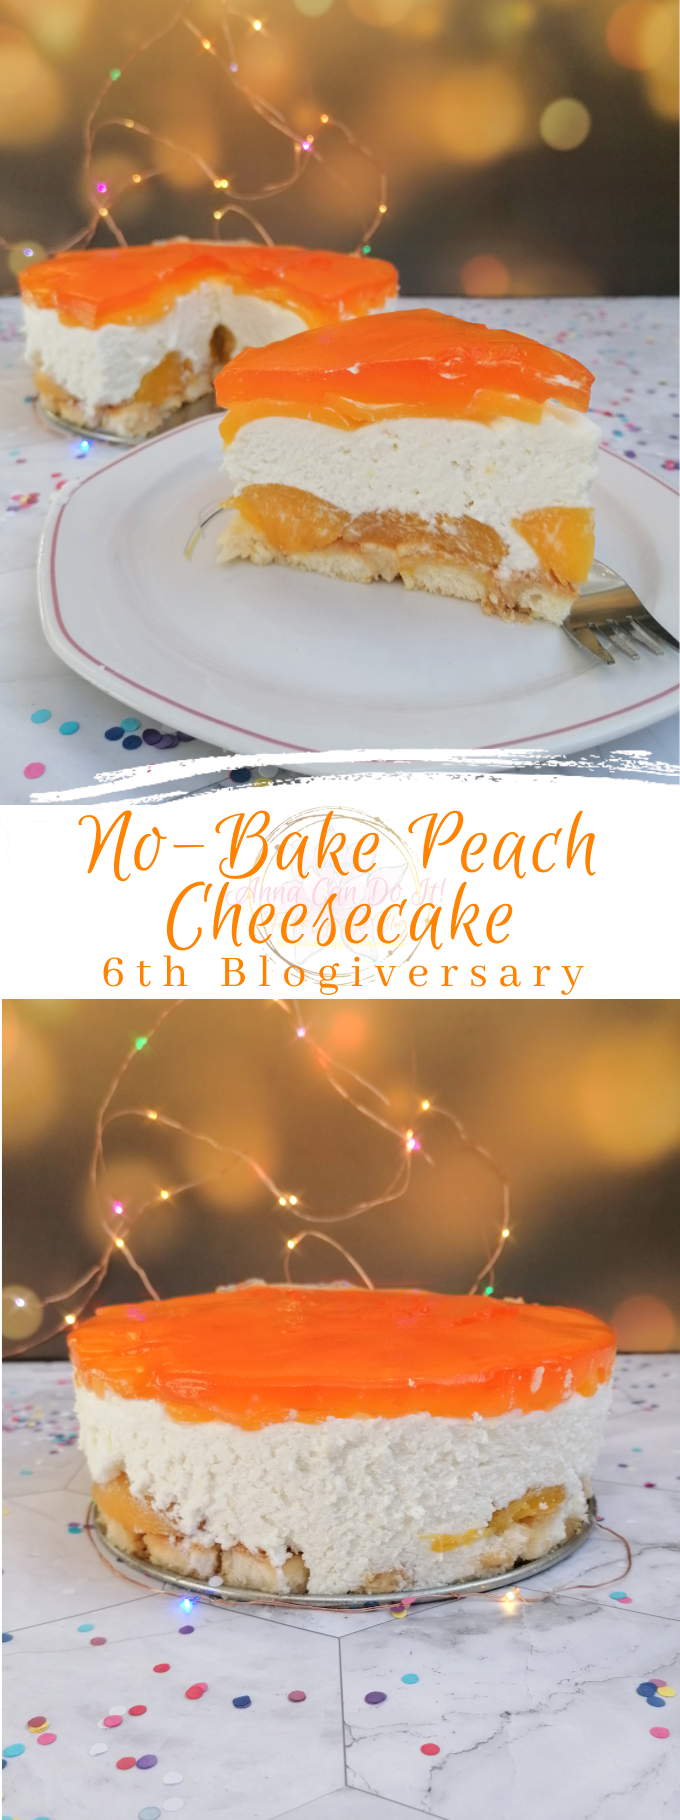 No-Bake Peach Cheesecake - 6th Blogiversary - Anna Can Do It!